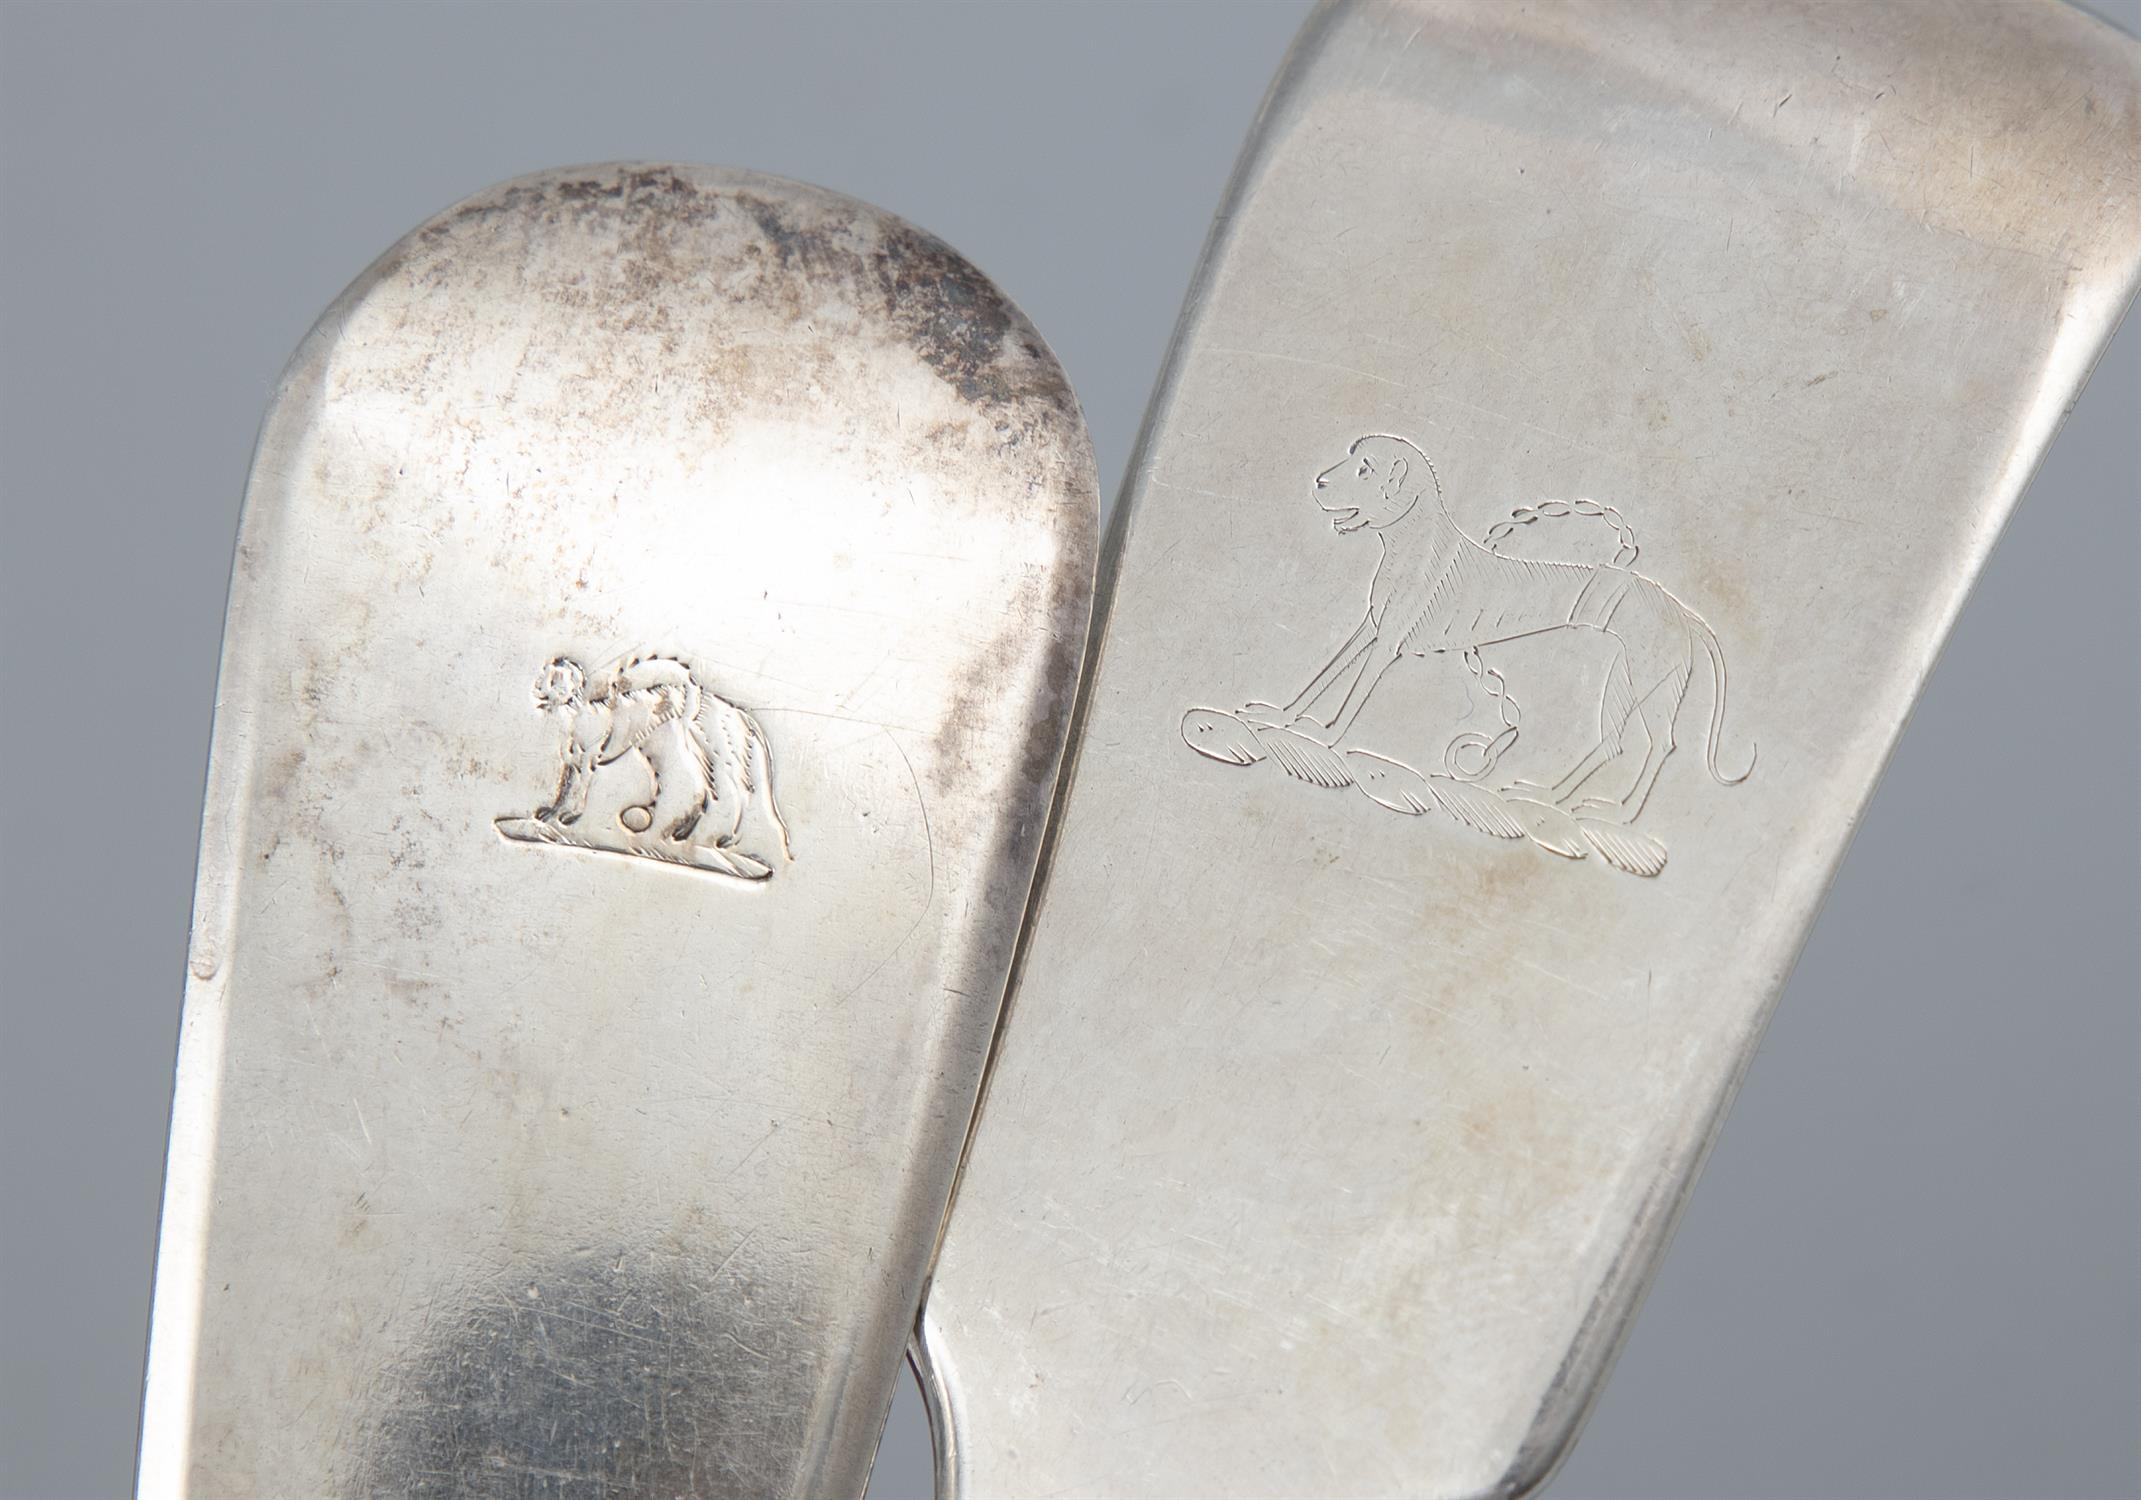 A MATCHED SET OF FIDDLE PATTERN SILVER FLATWARE, London, of various dates and makers, - Image 2 of 4